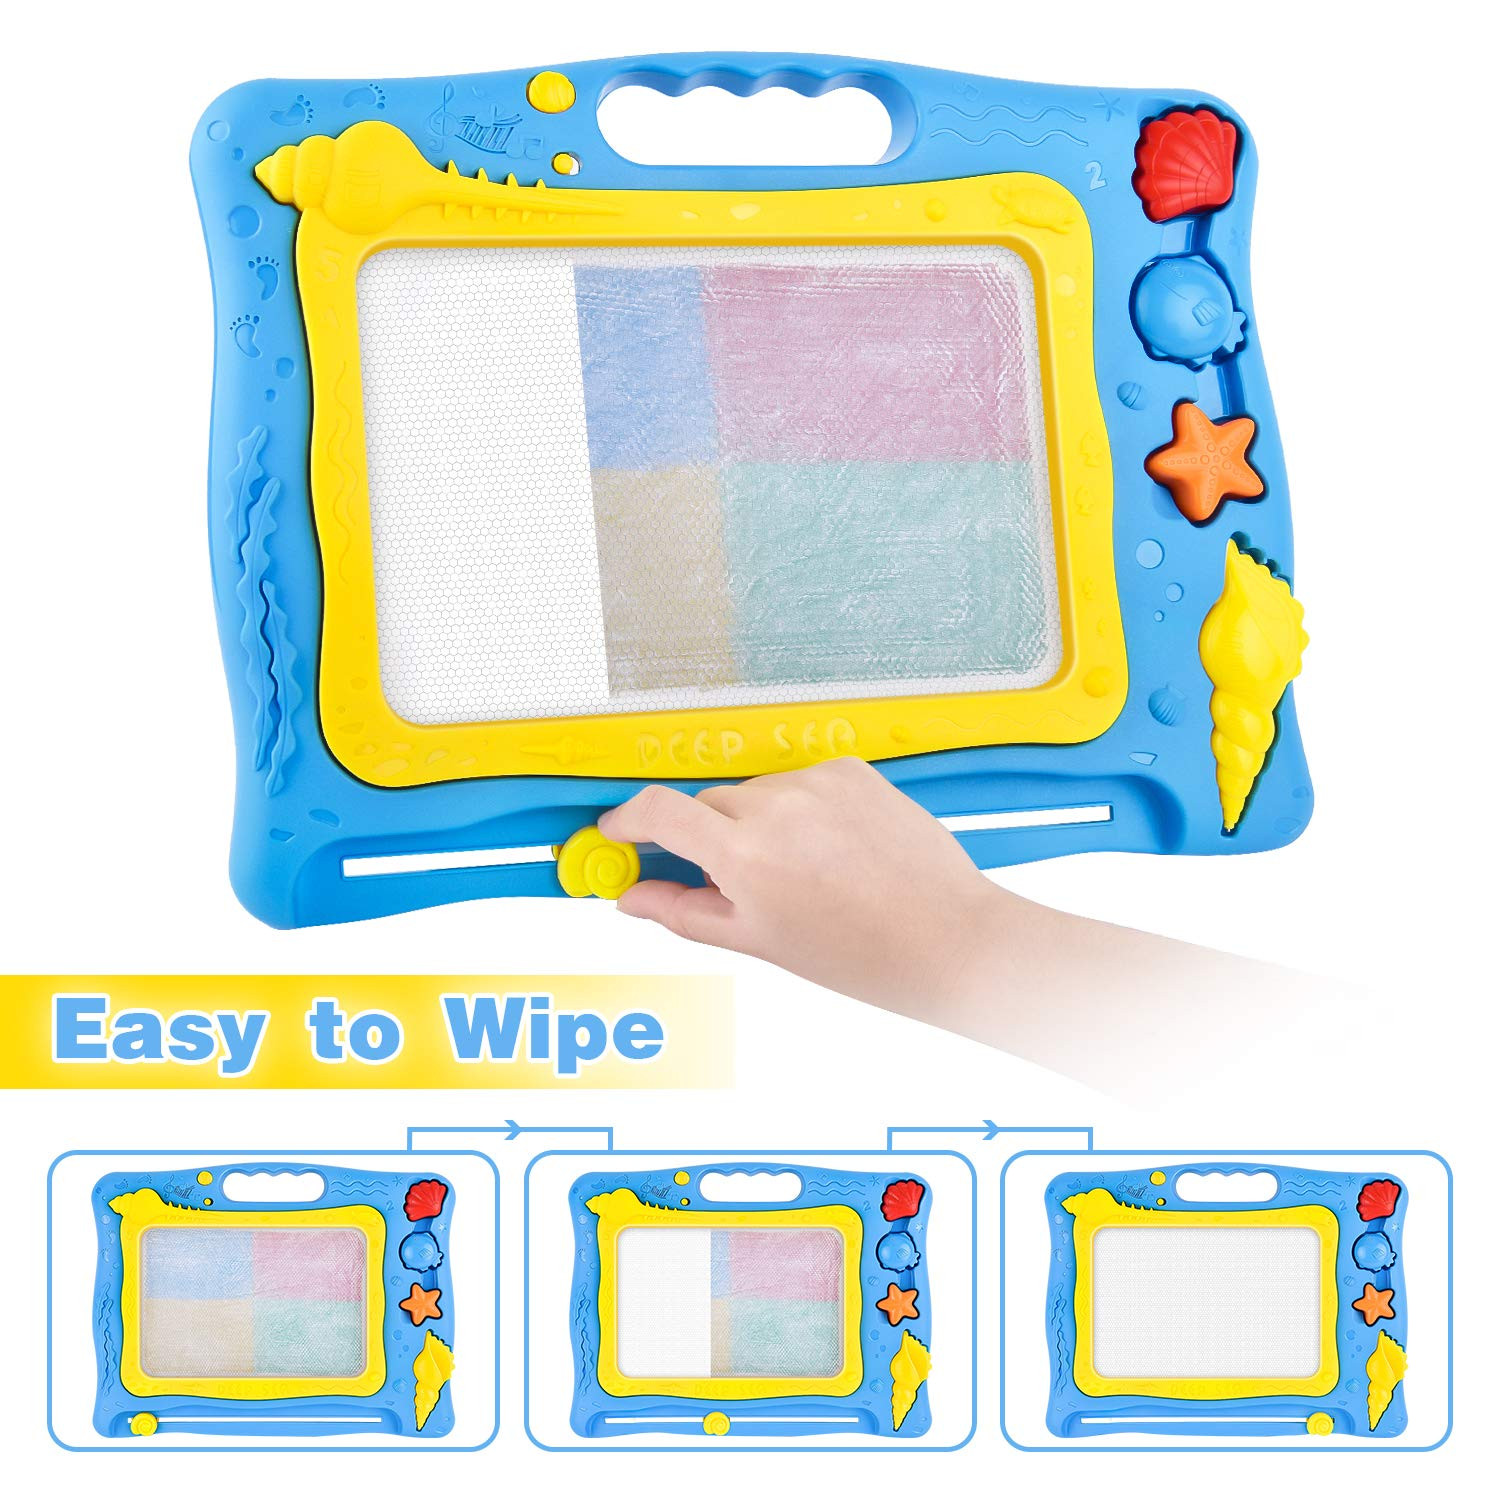 GotechoD Magnetic Drawing Board for Kids 13.4X17.5 Erasable Magna Doodle Board Drawing Doodle Magnet Toddlers Boys Girls Birthday Gift Drawing Toy Writing Sketching Doodle Pad for 3